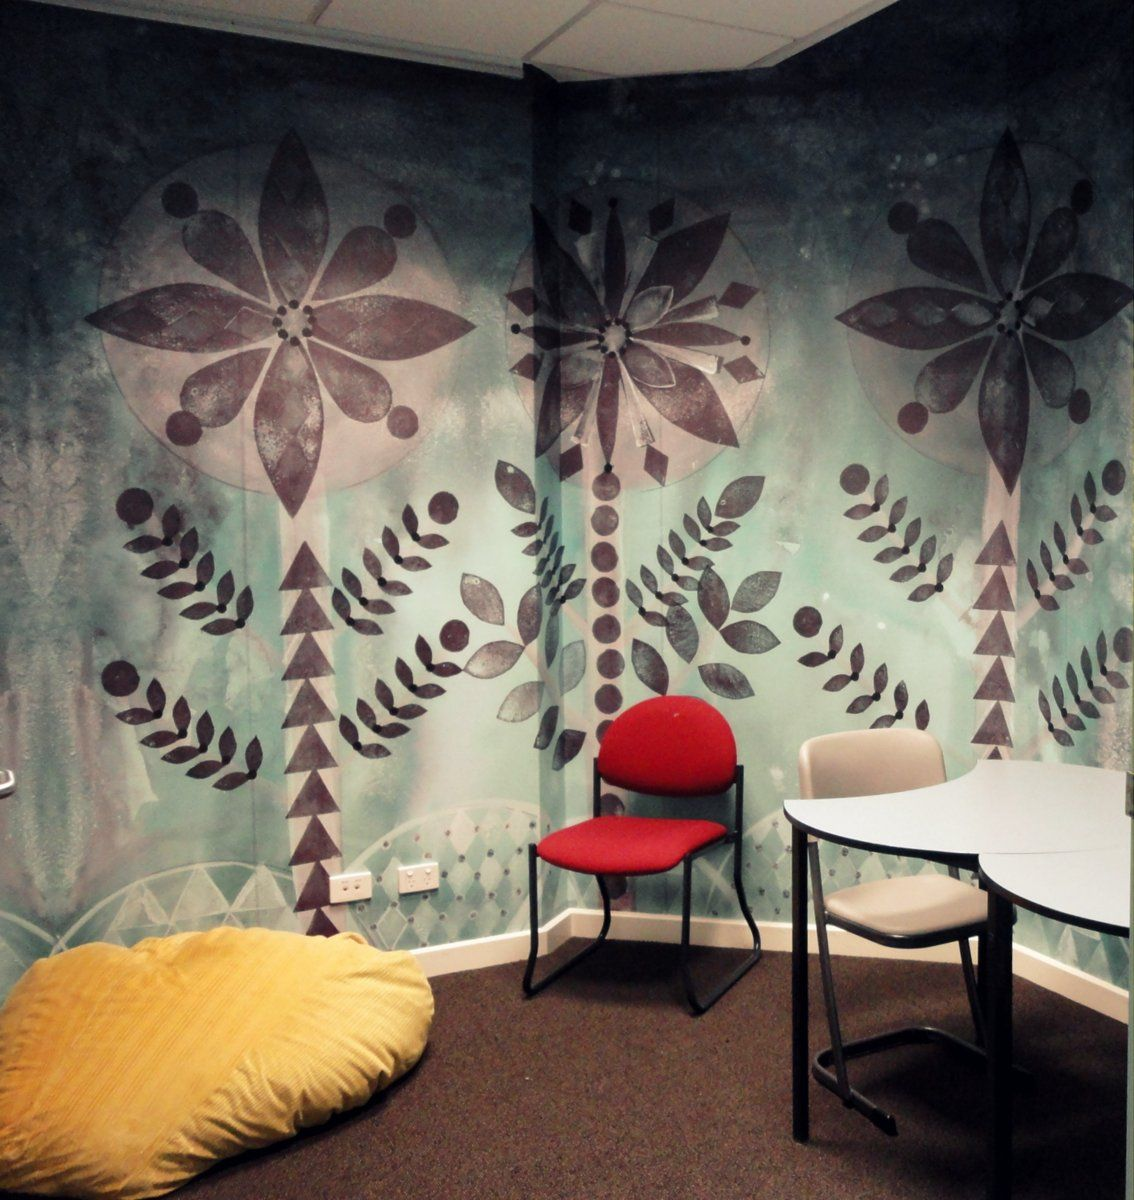 Custom Printed Removable Wallpaper Chill Out Room St Michael S Grammar Fantastic Wallpapers Removable Wallpaper Chill Out Room